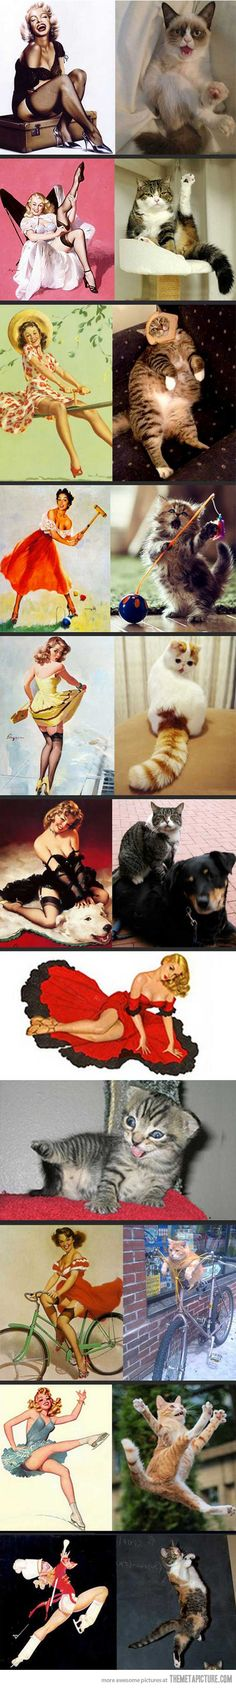 Pin-up cats, IM DYING